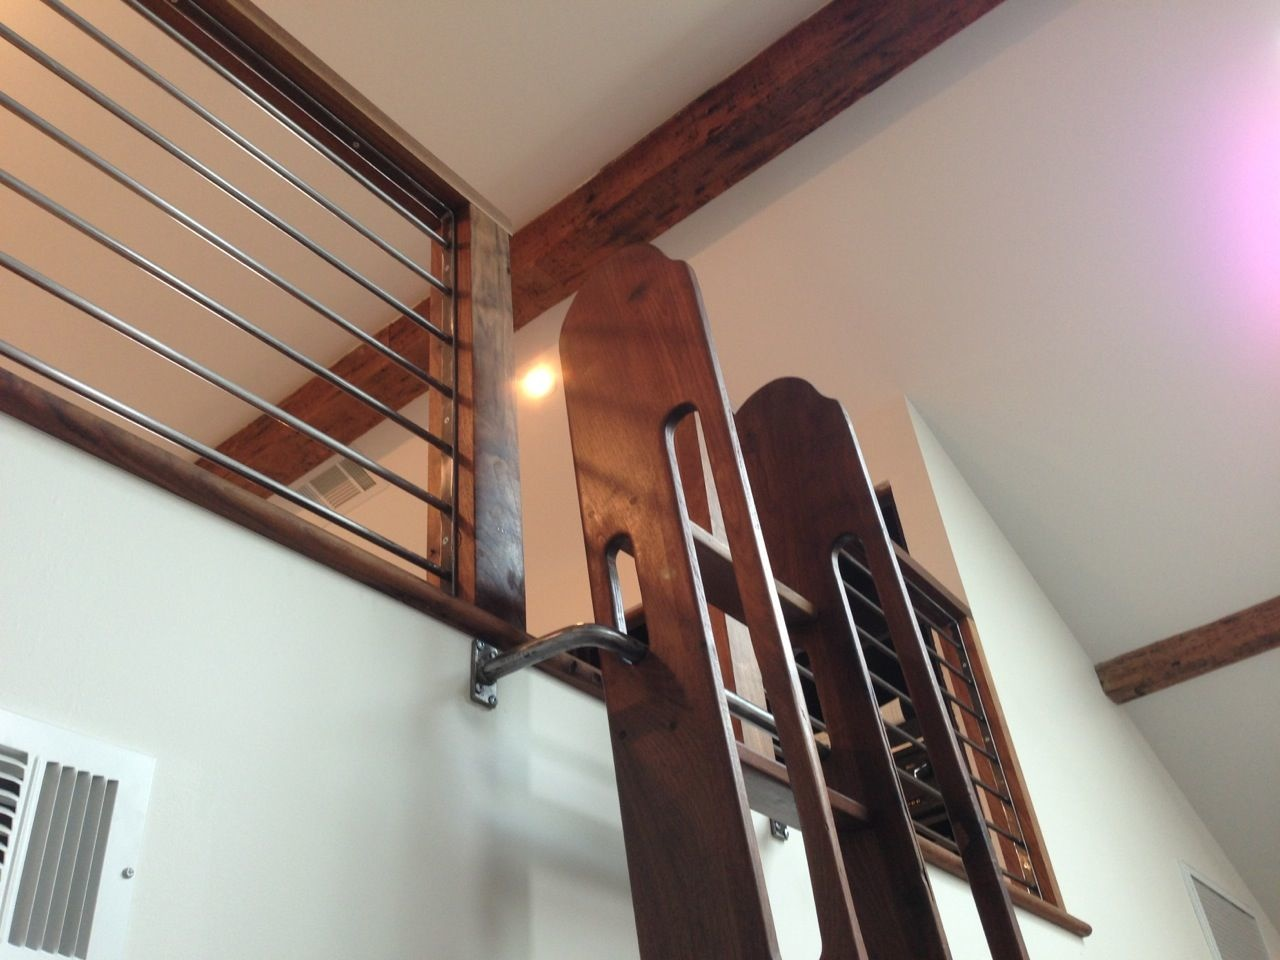 This Old Wood Save Space With Style Custom Crafted Ladders